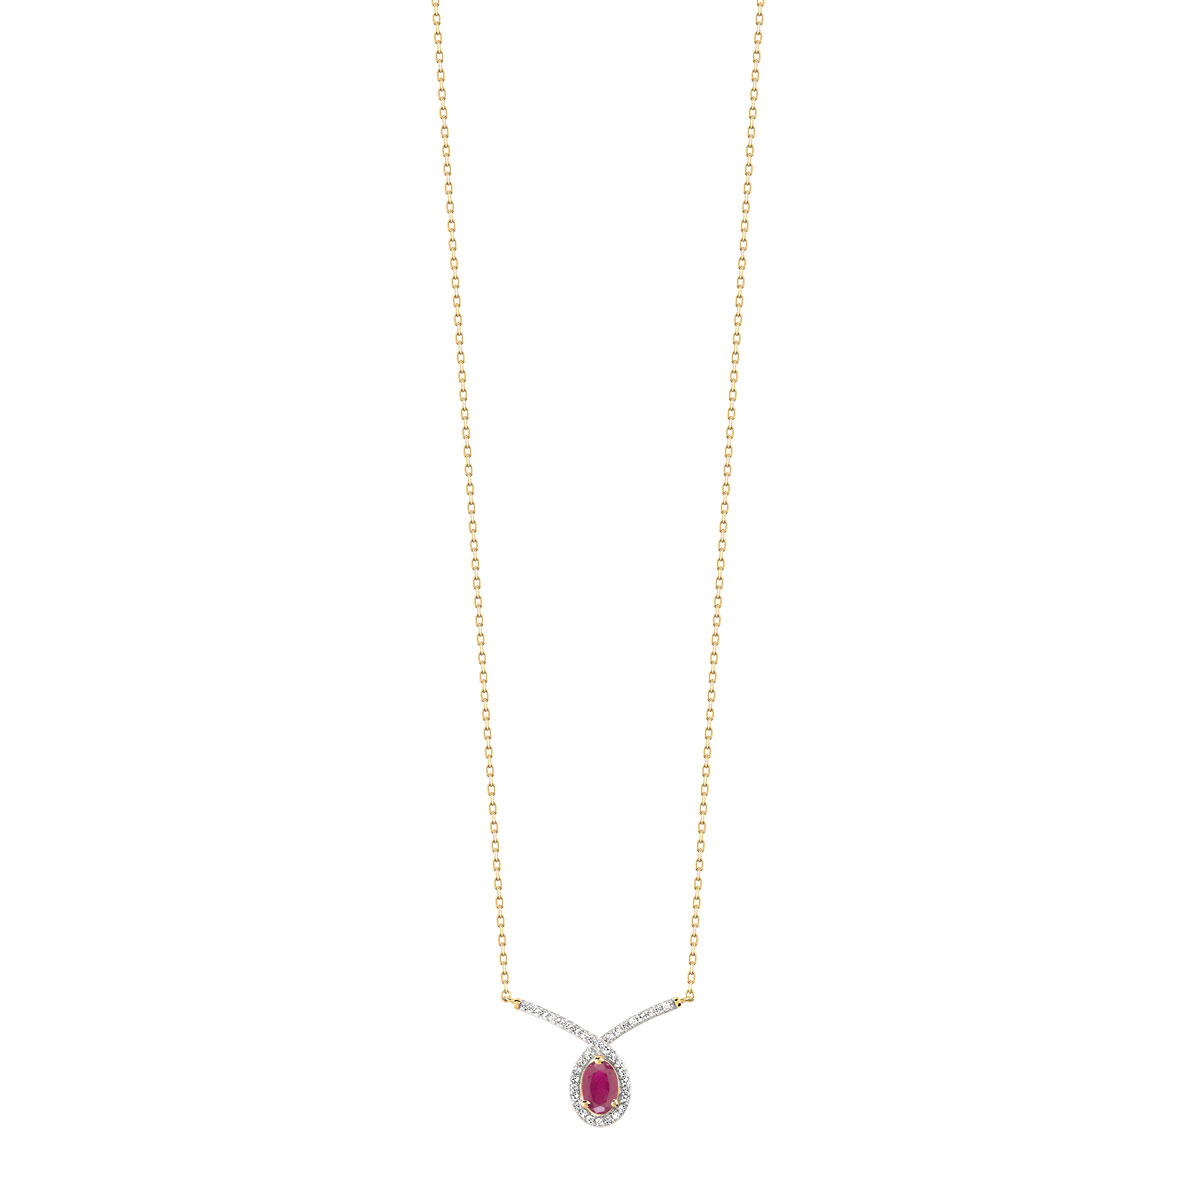 Collier or 375 2 tons rubis et diamant - vue 1